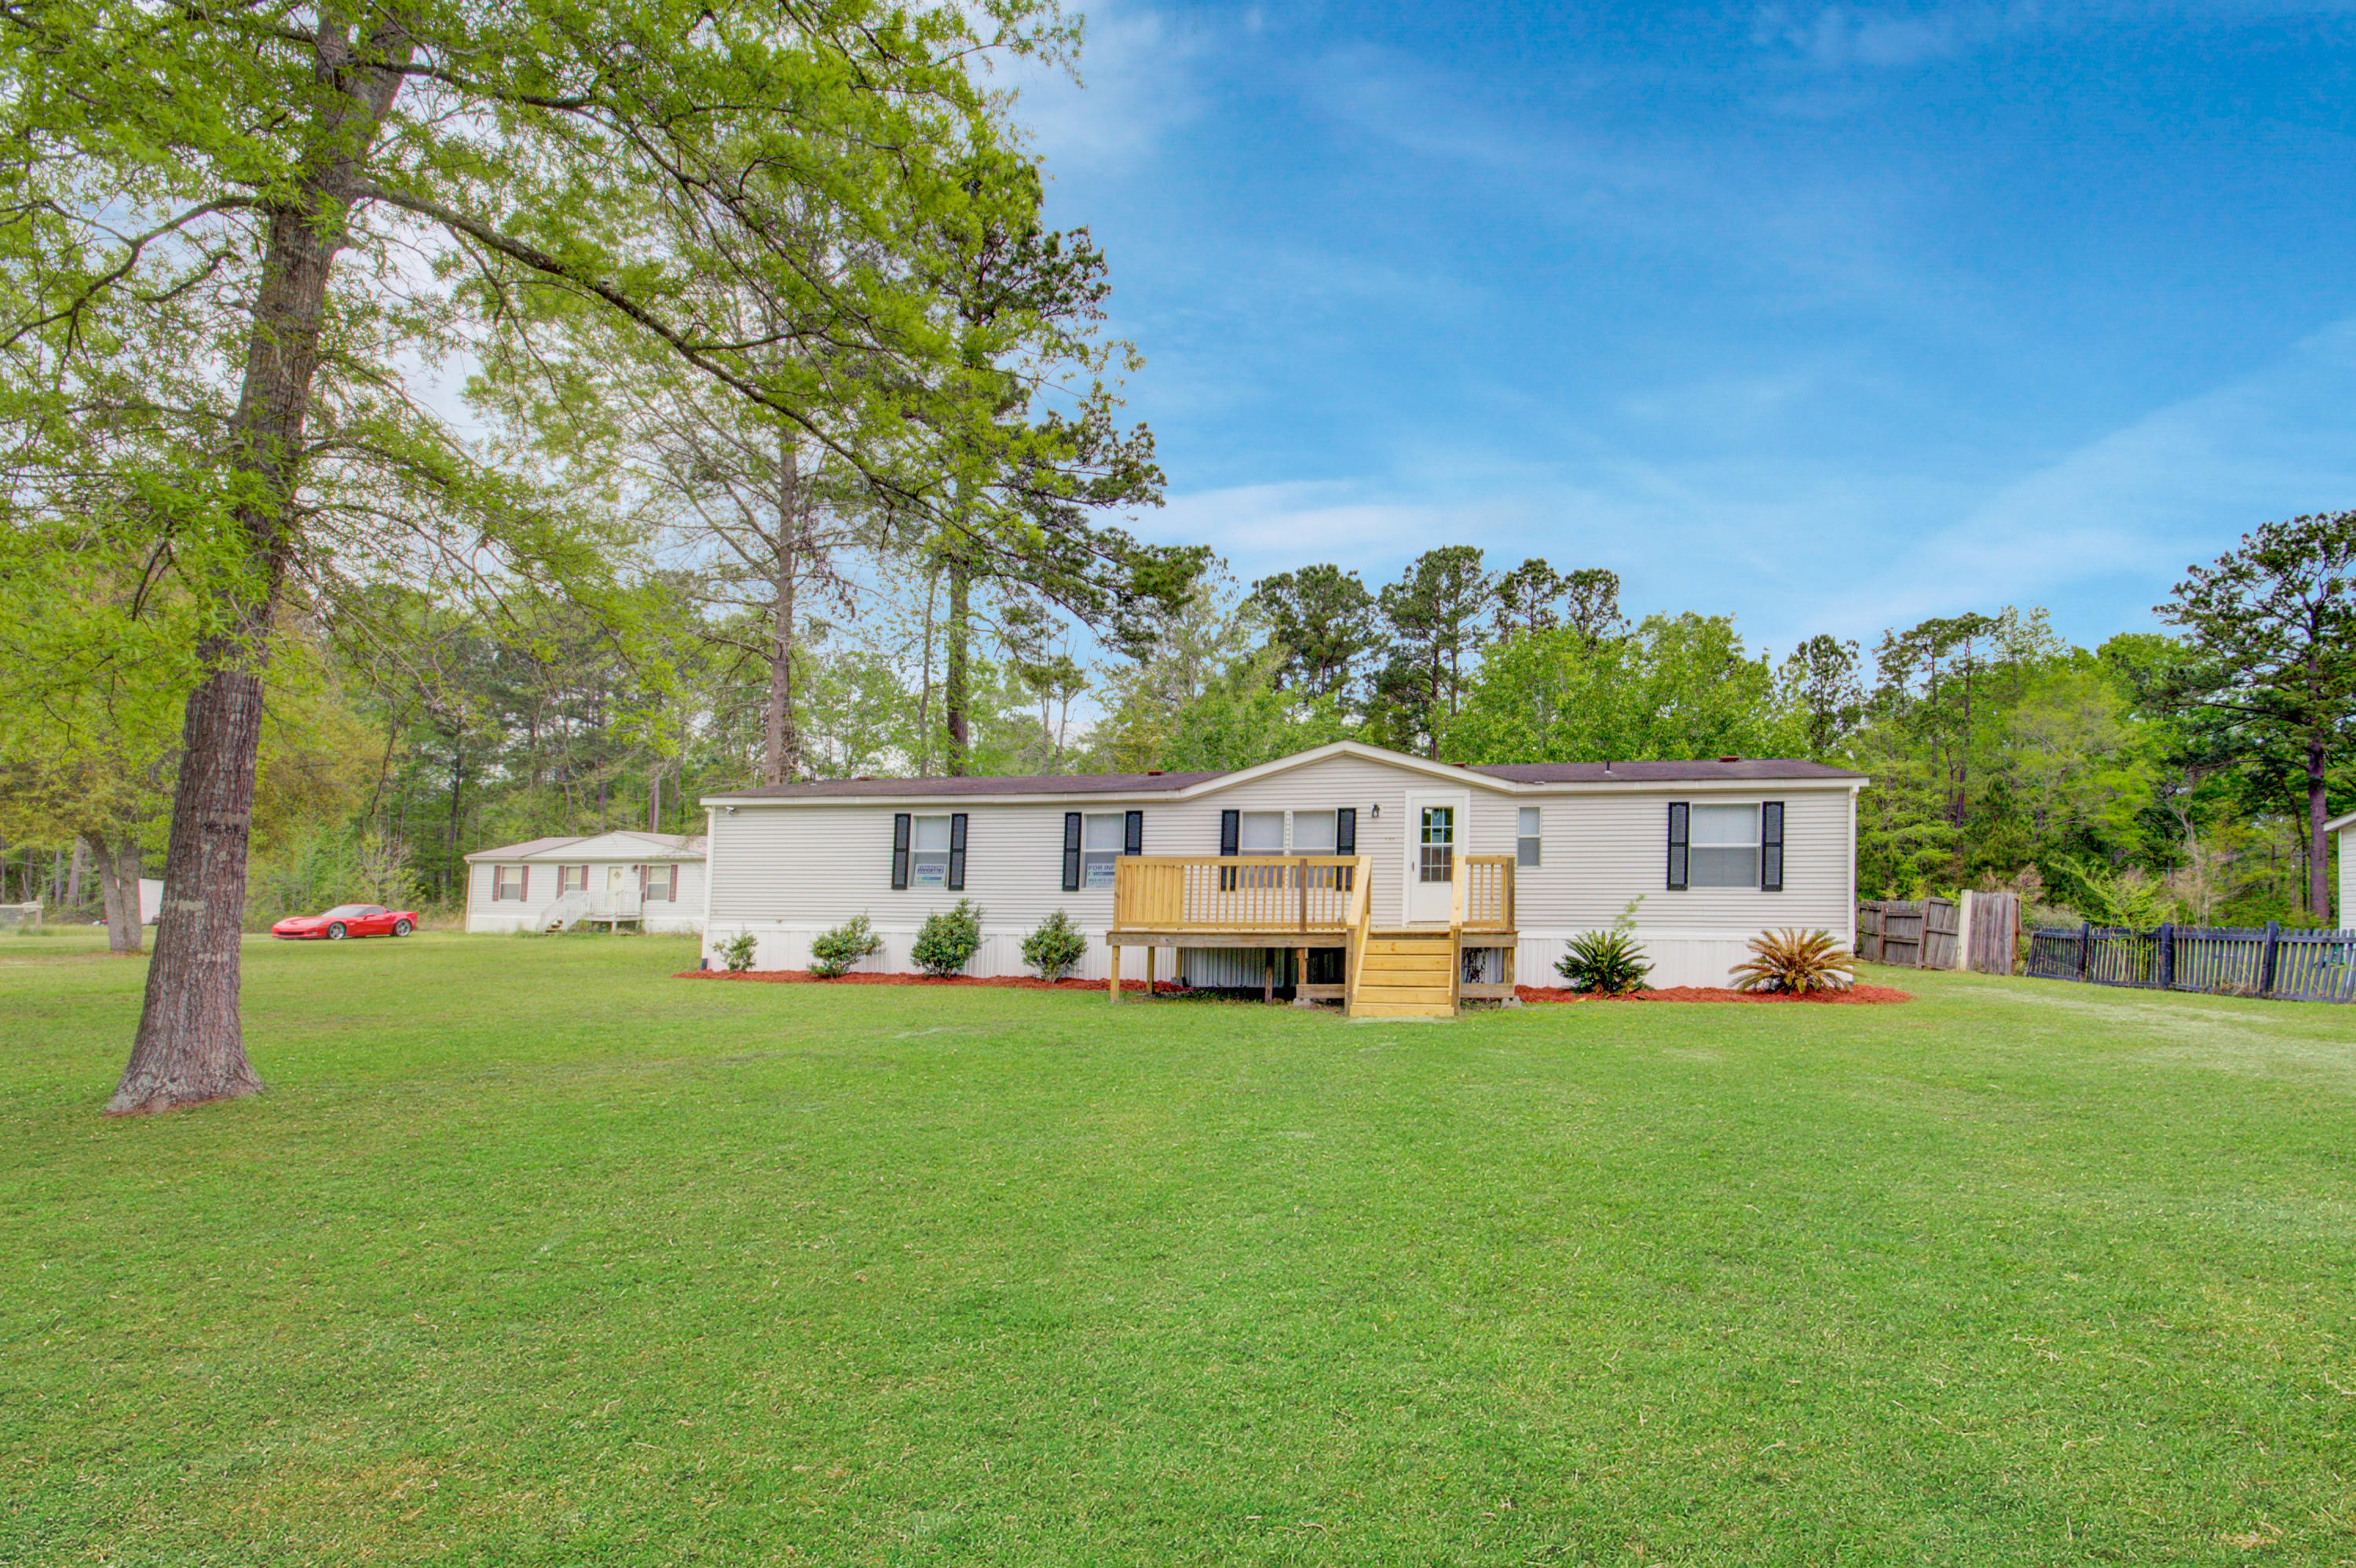 204 St Germain Drive Summerville, SC 29483